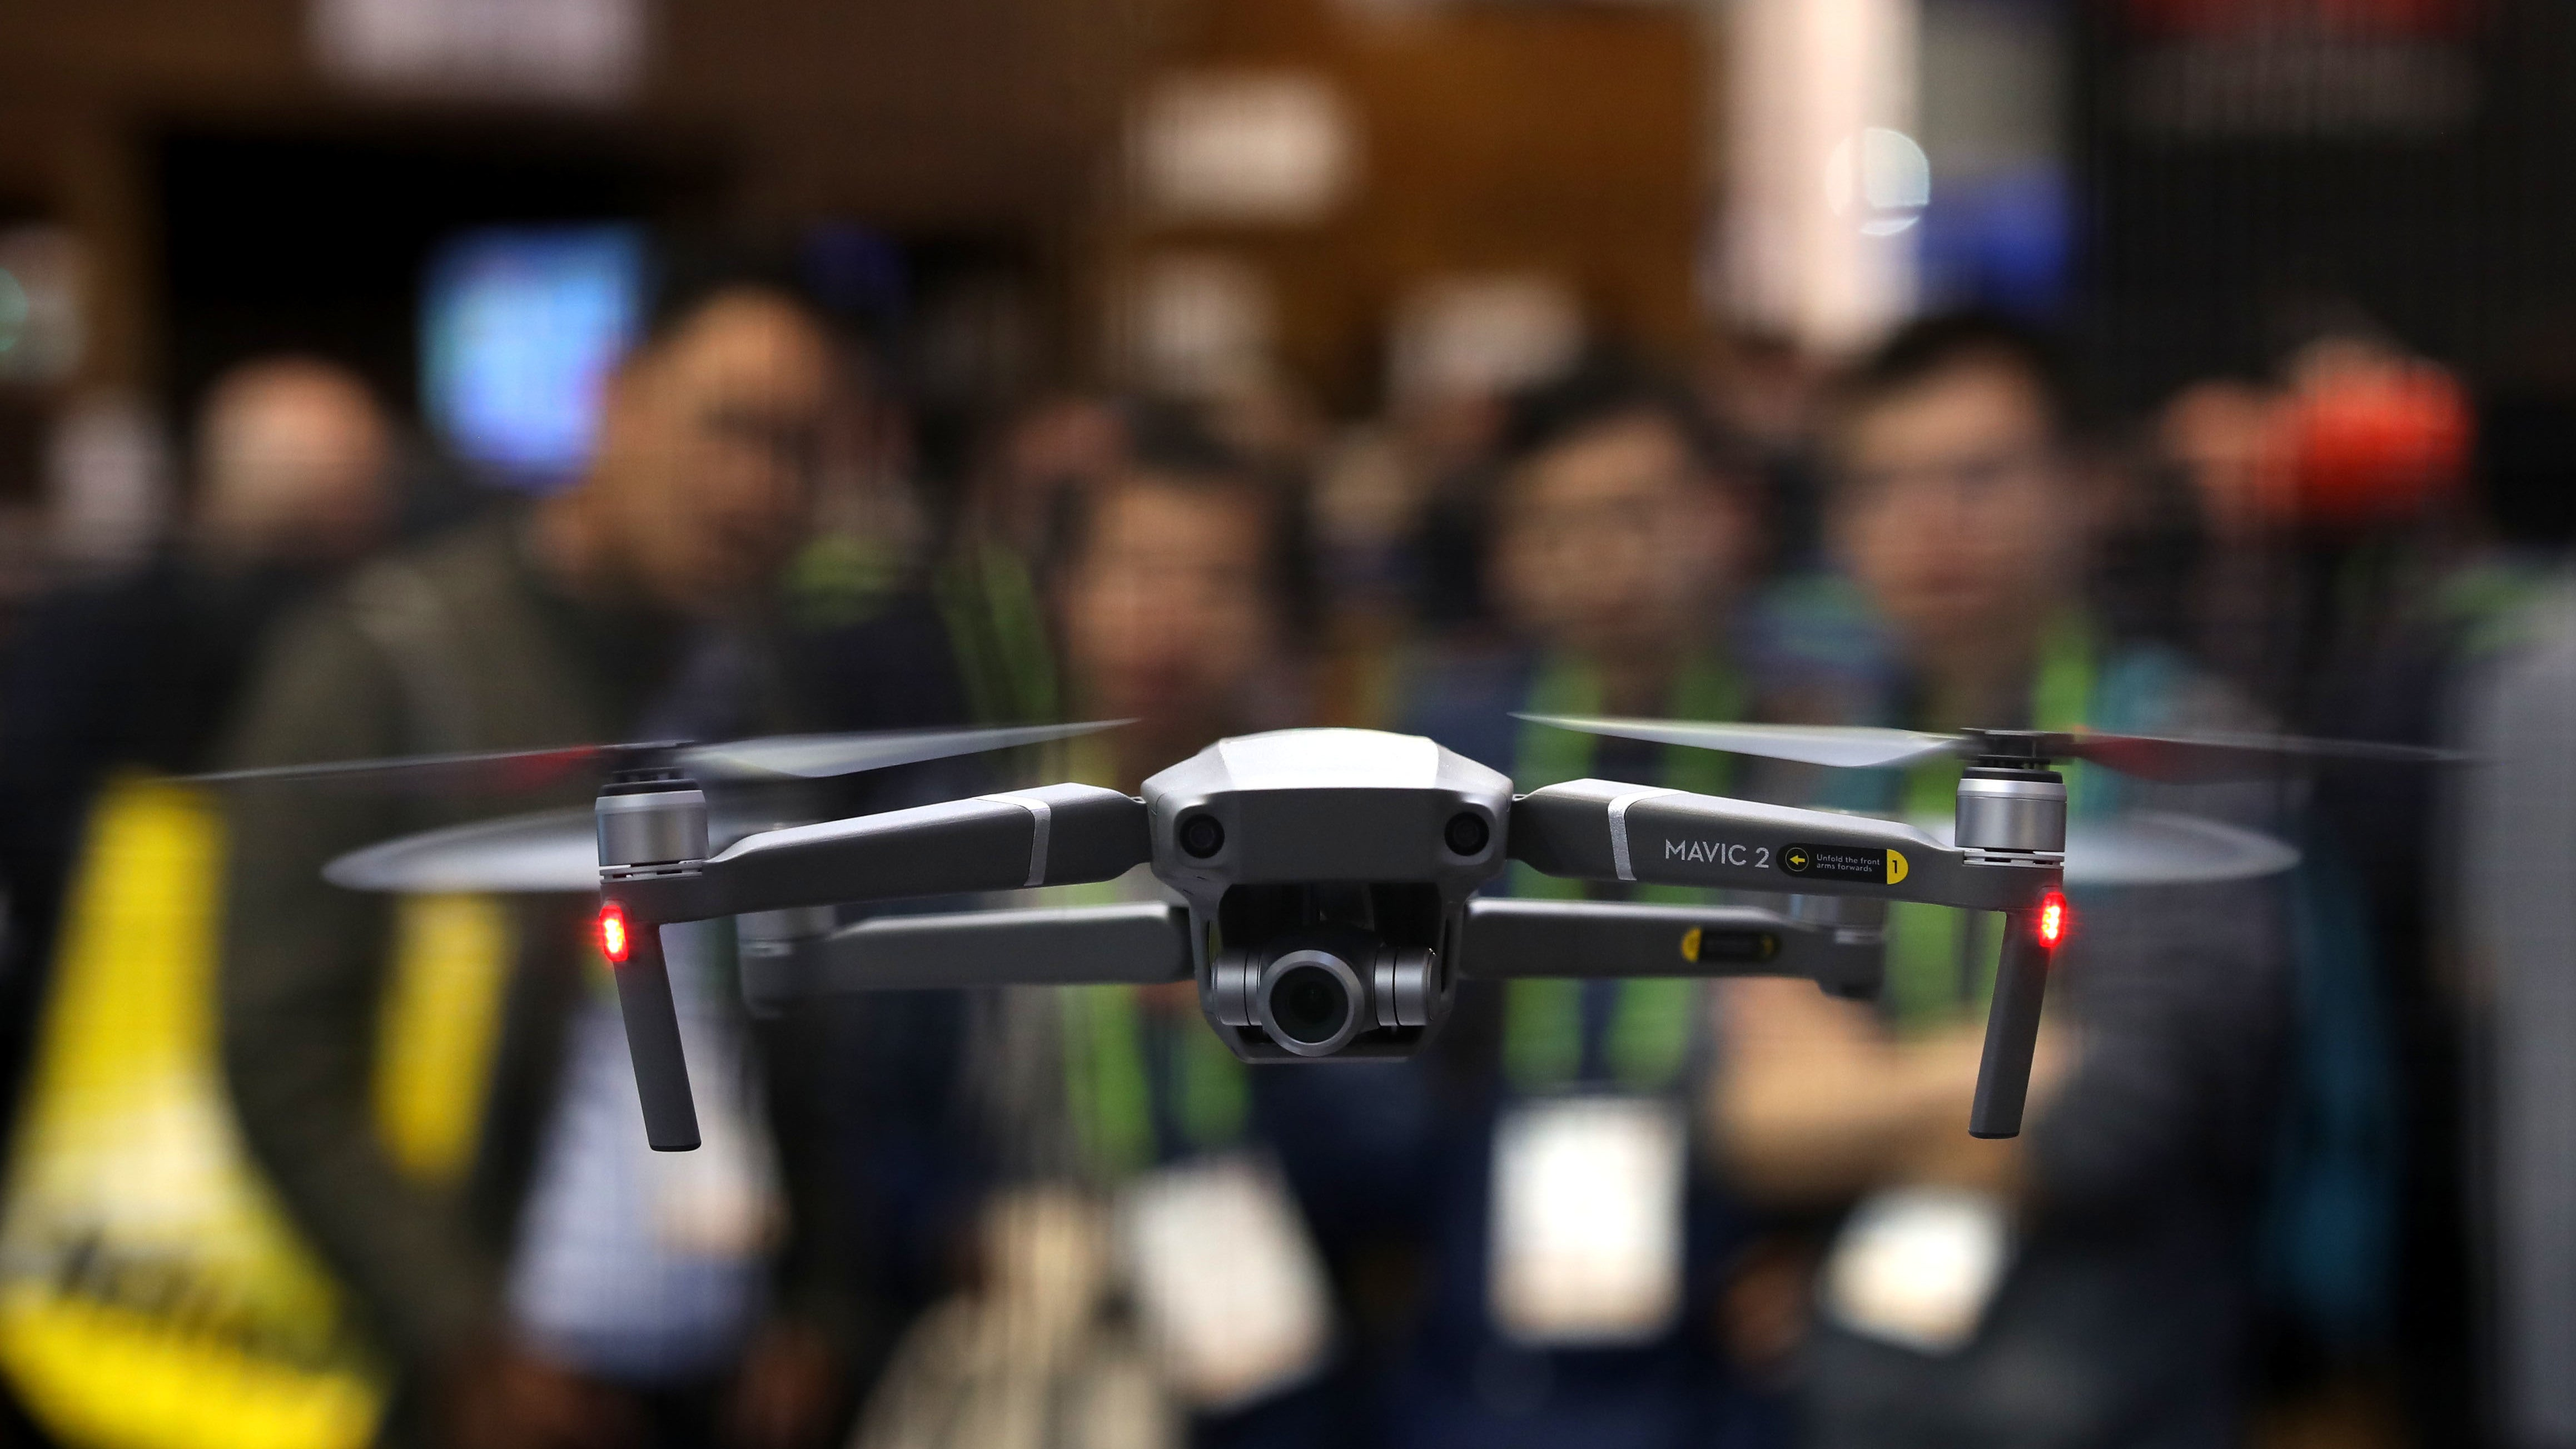 New Batch Of Drone Rules May Soon Allow Flying Over Crowds